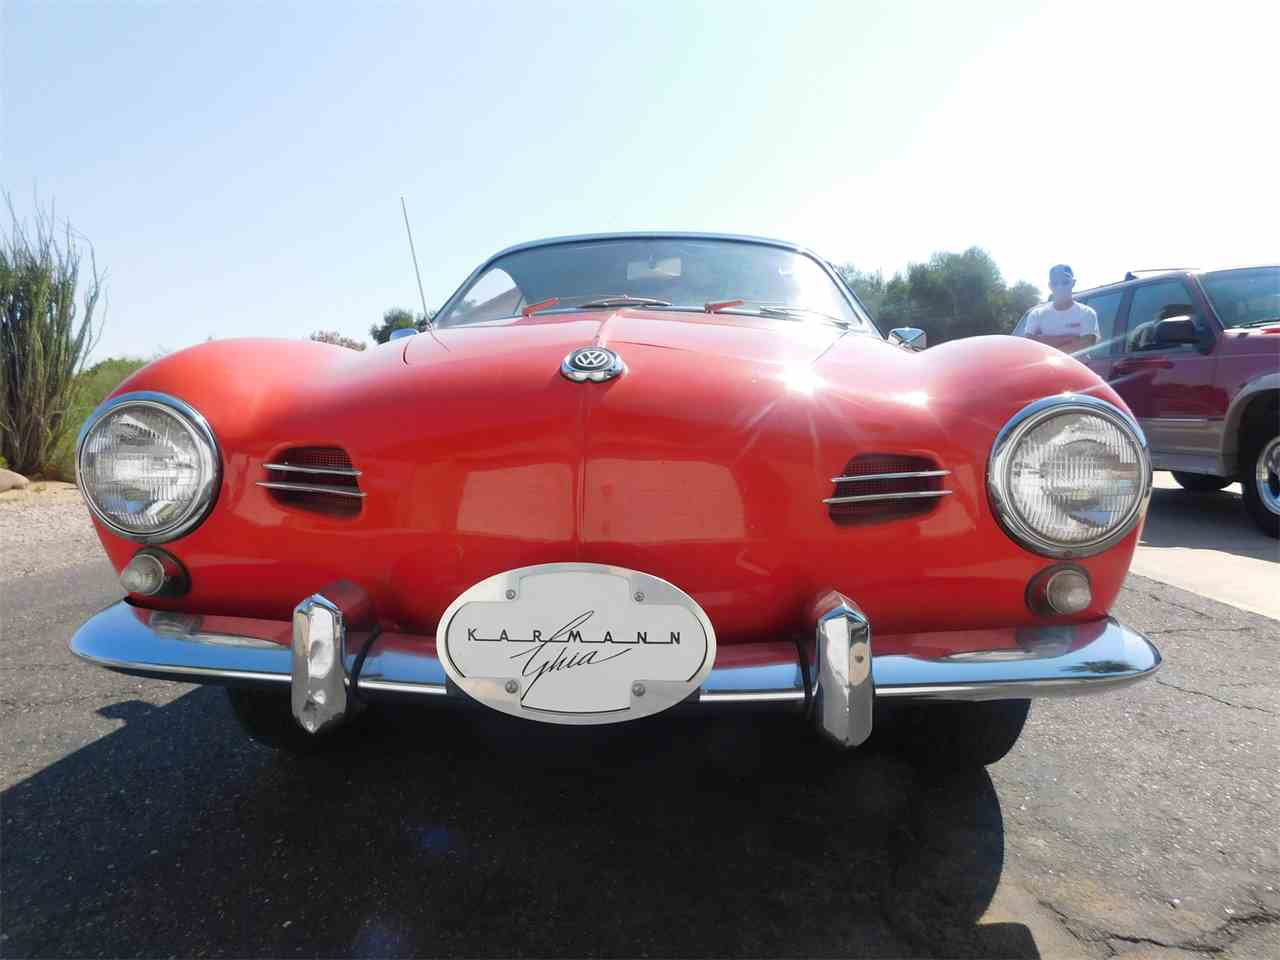 Large Picture of '56 Volkswagen Karmann Ghia - $33,000.00 Offered by Classic Car Pal - LVBF